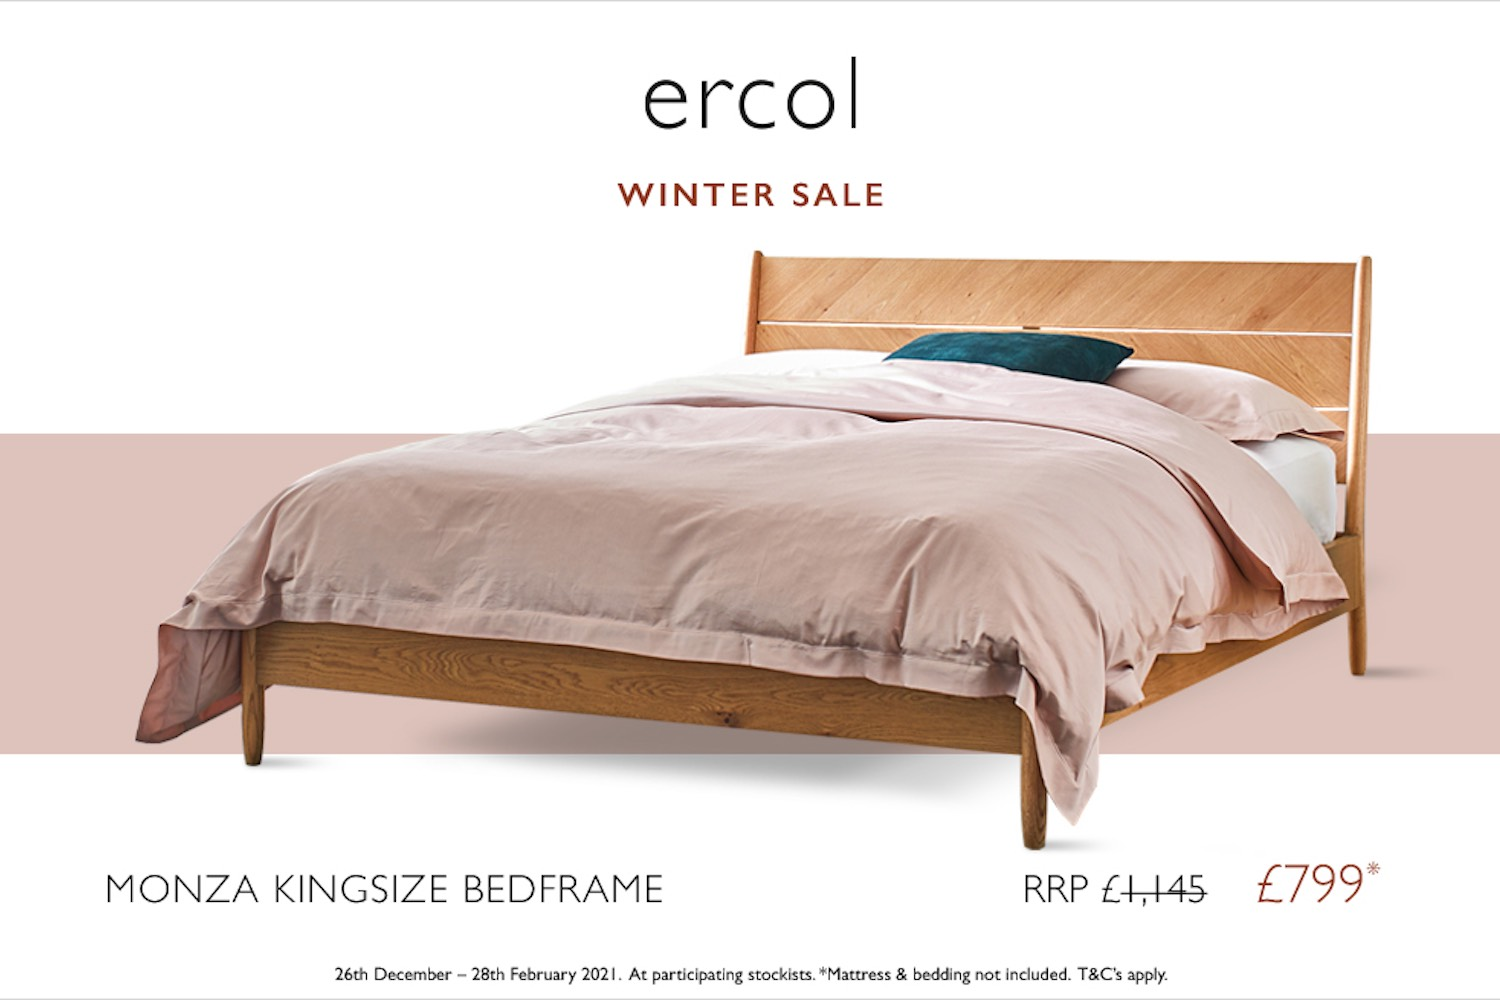 ercol bed promotions